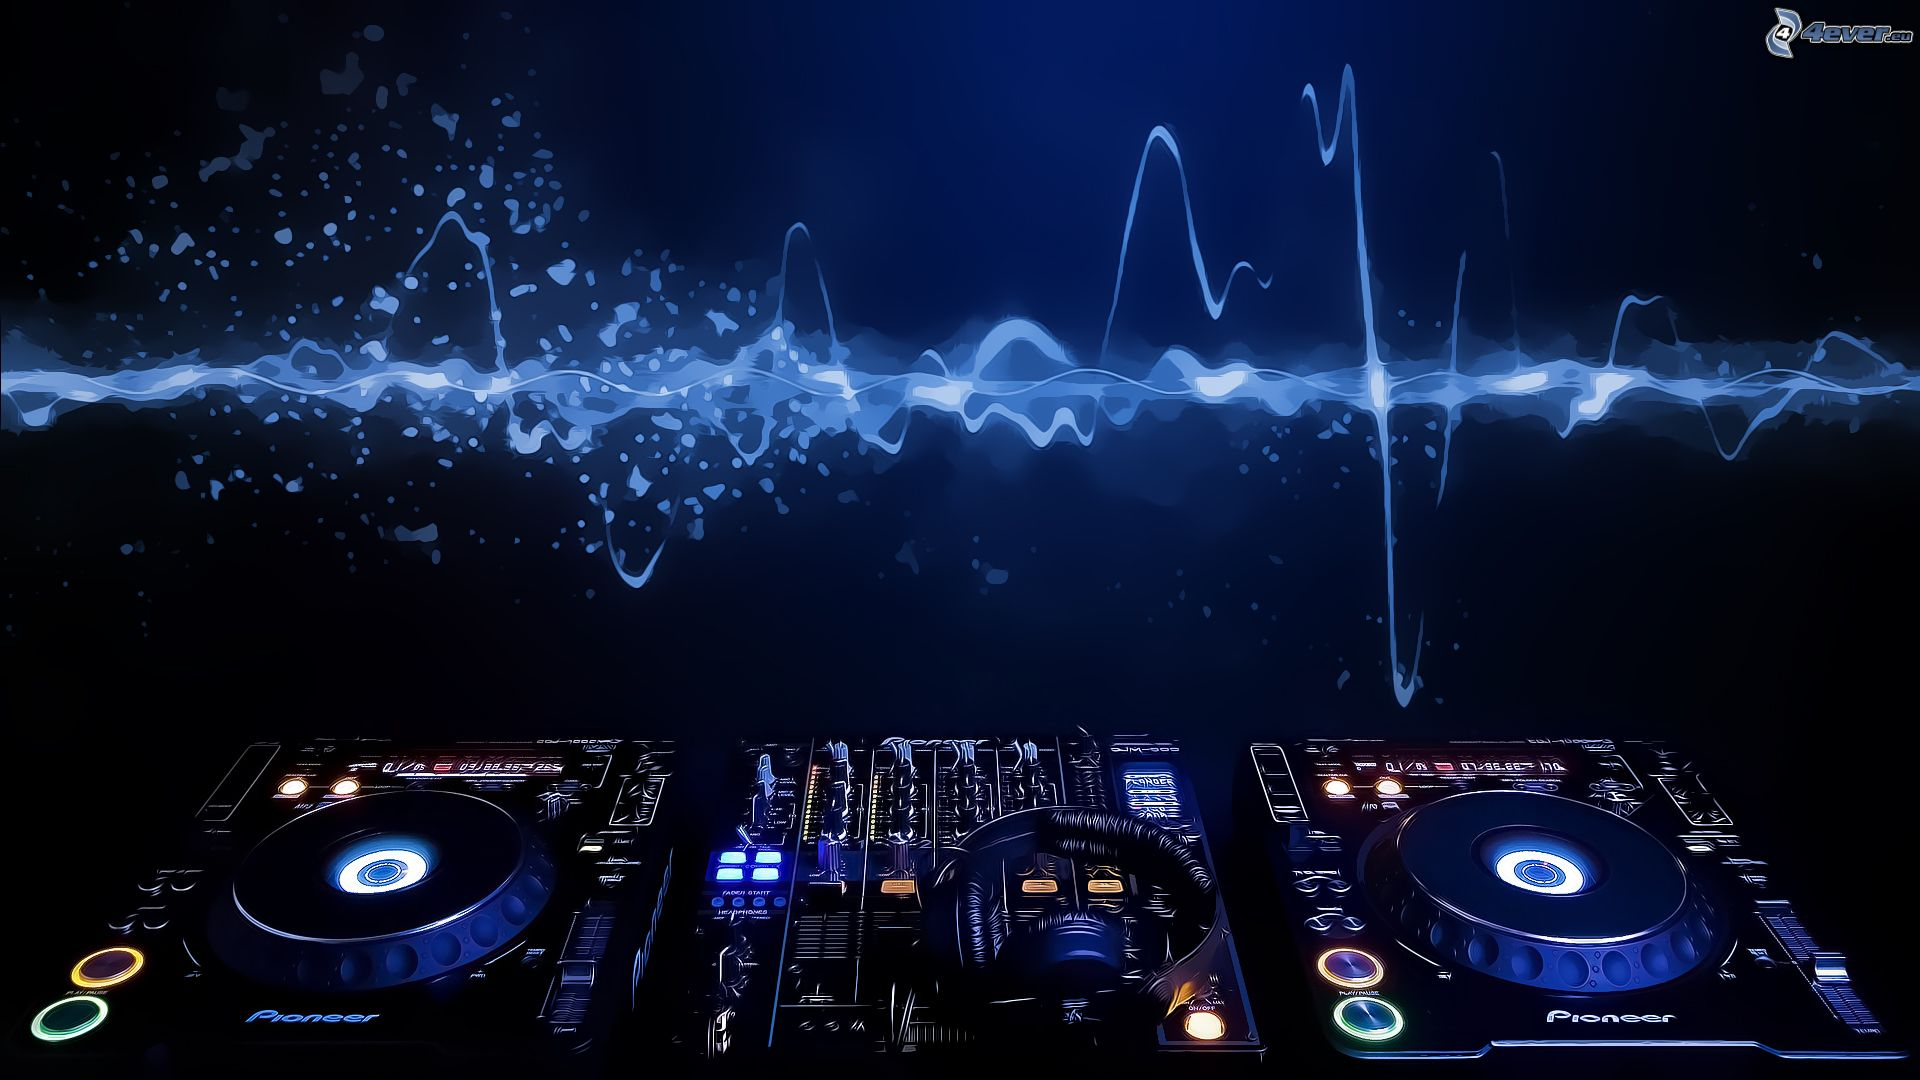 Dj console for Beautiful house music